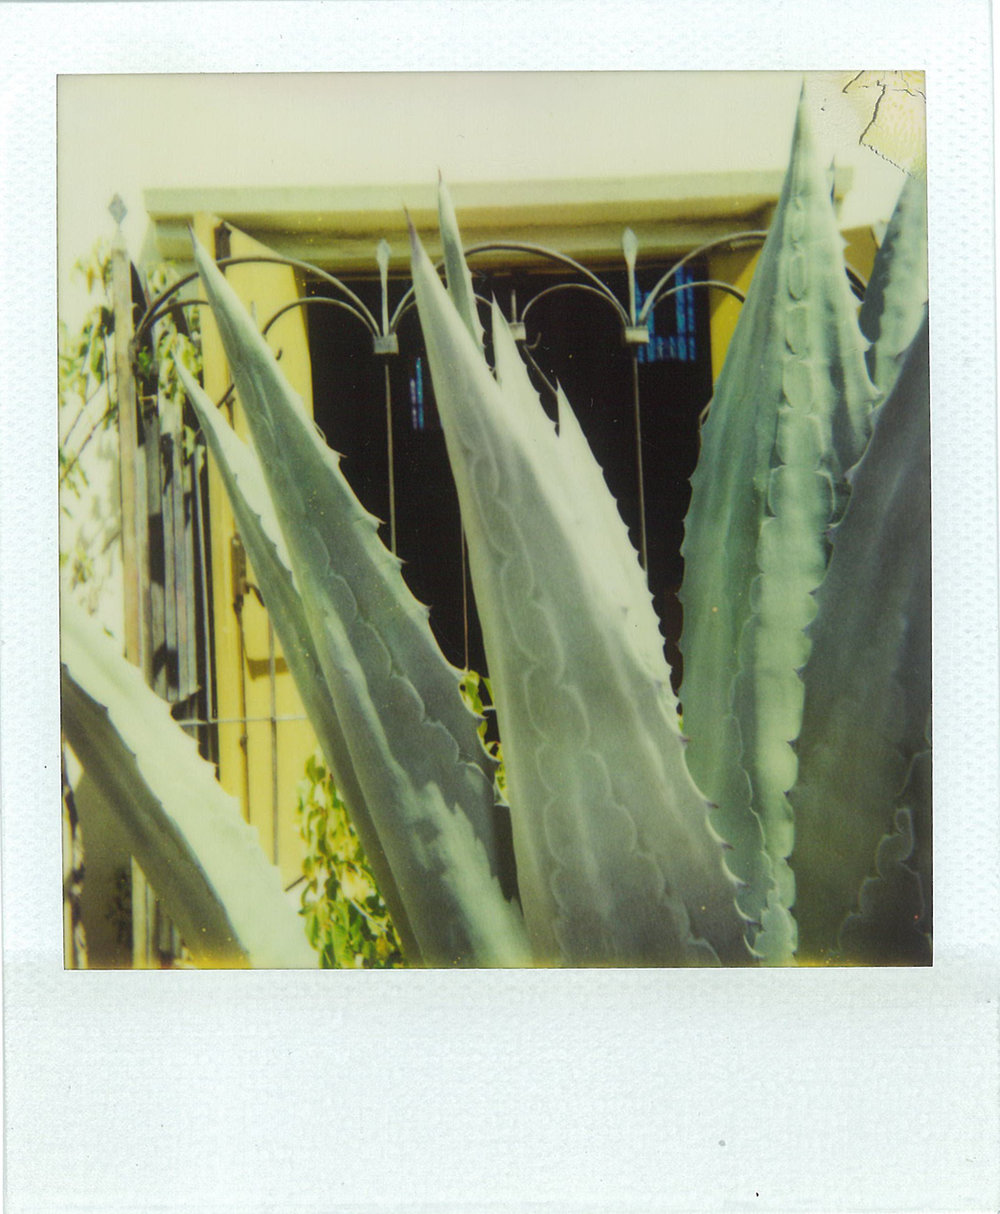 Polaroid from the Serra Retreat, Malibu, California by Harold Budd.